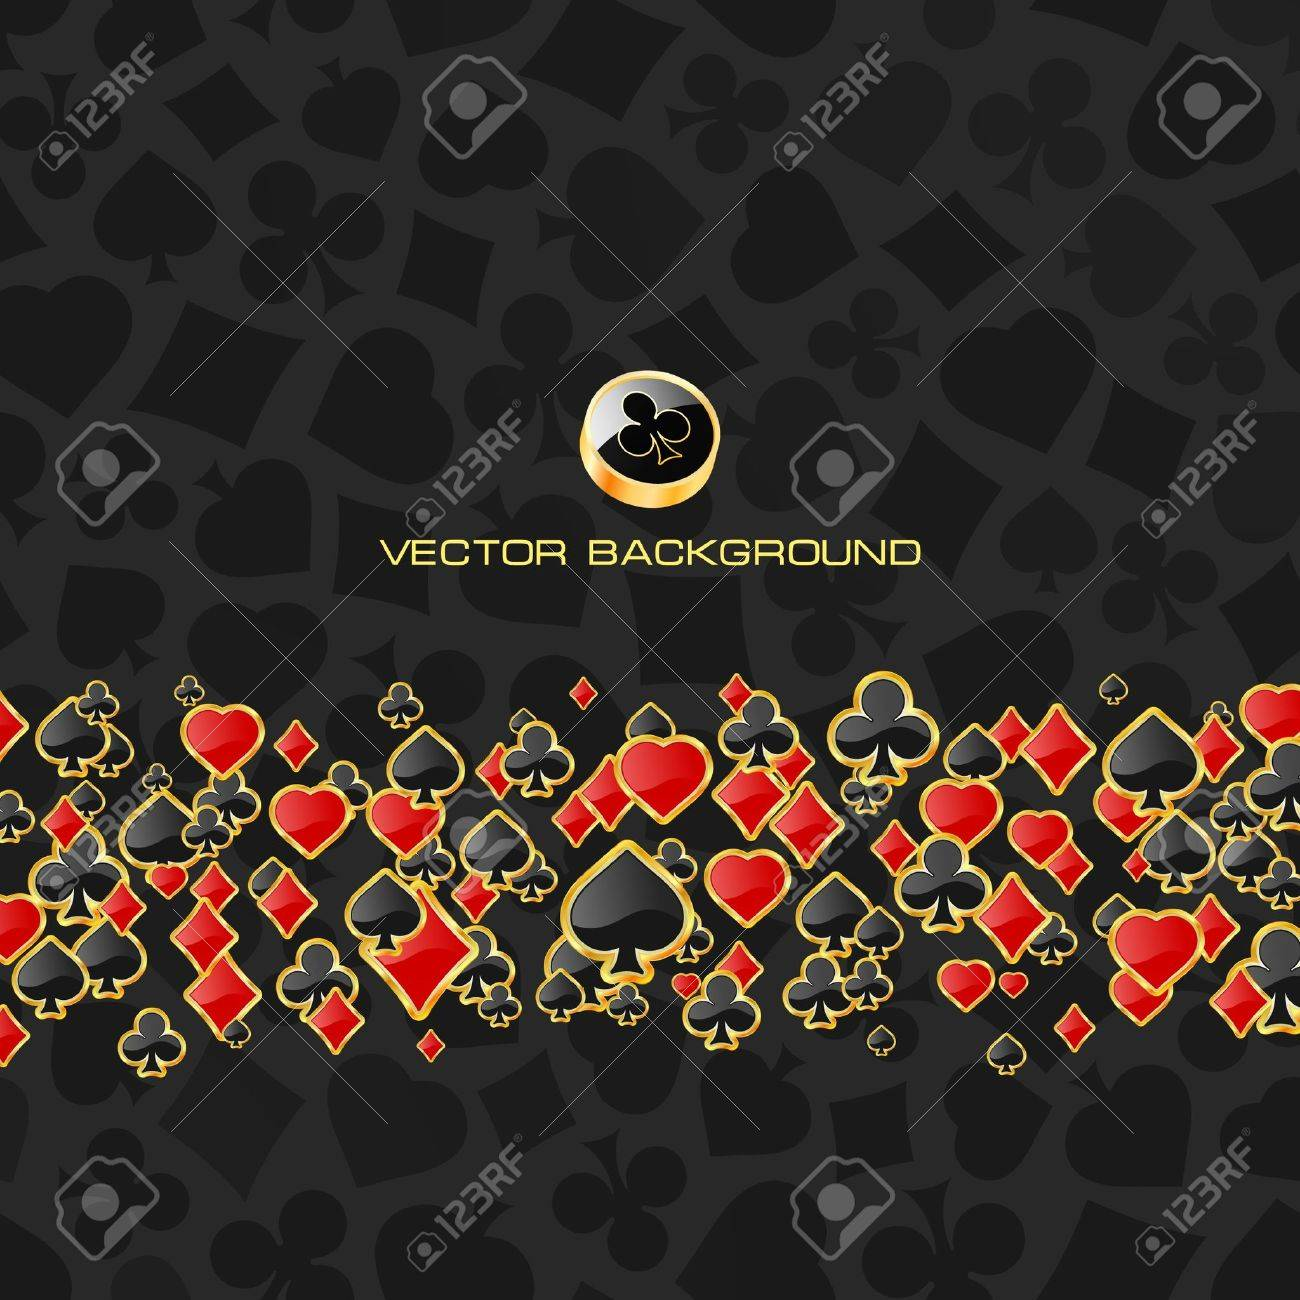 Abstract background with card suits. Stock Vector - 7800695